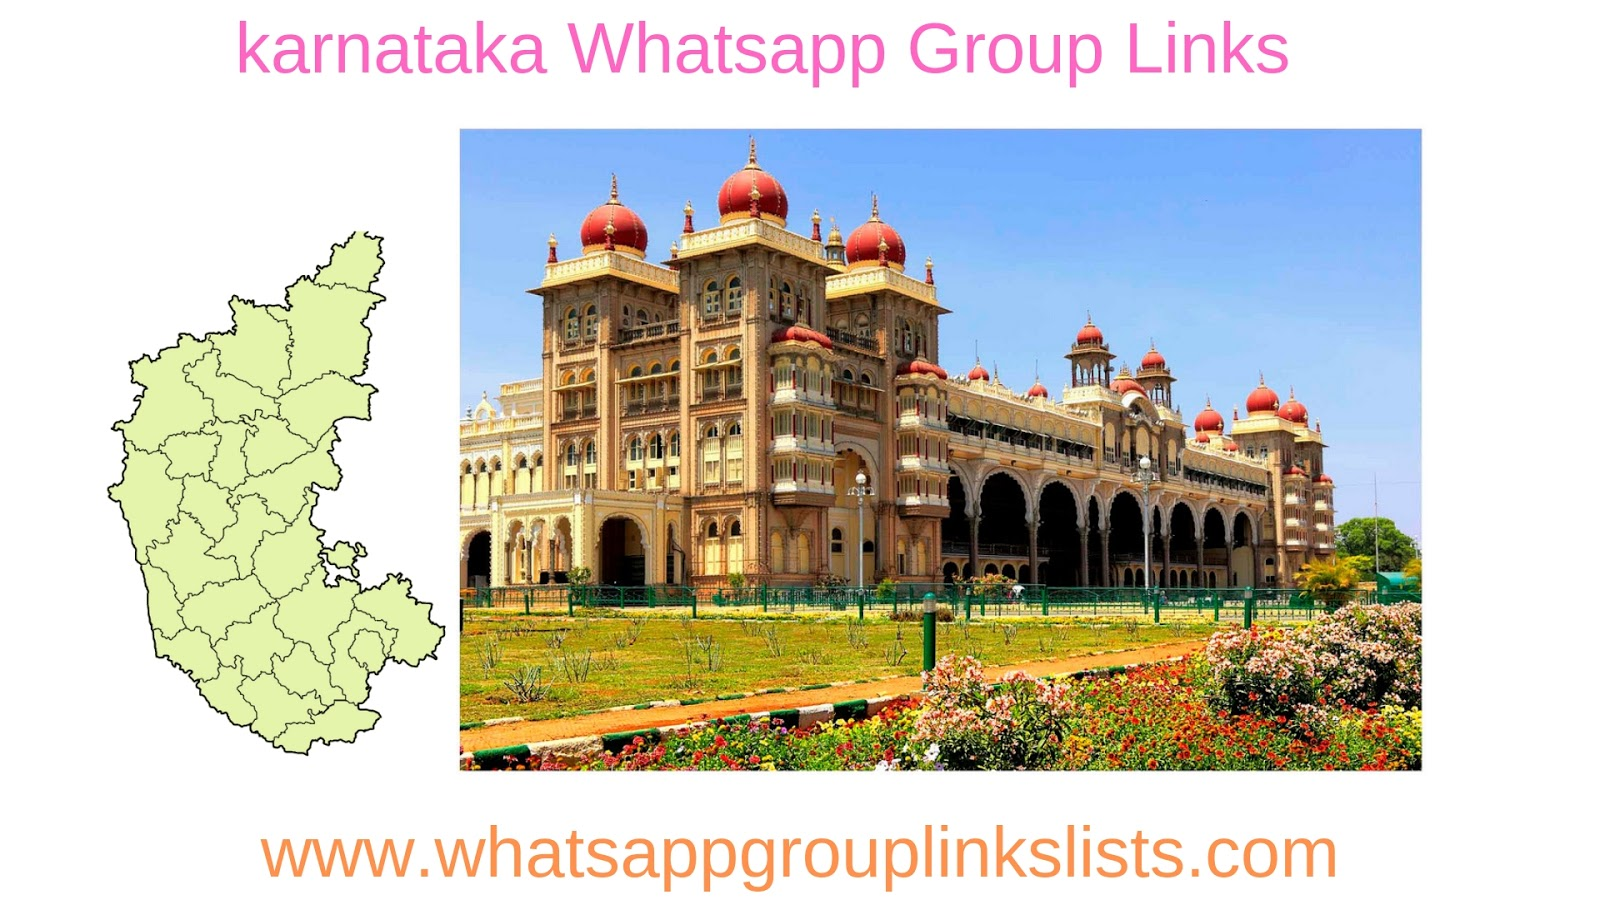 Join karnataka Whatsapp Group Links List